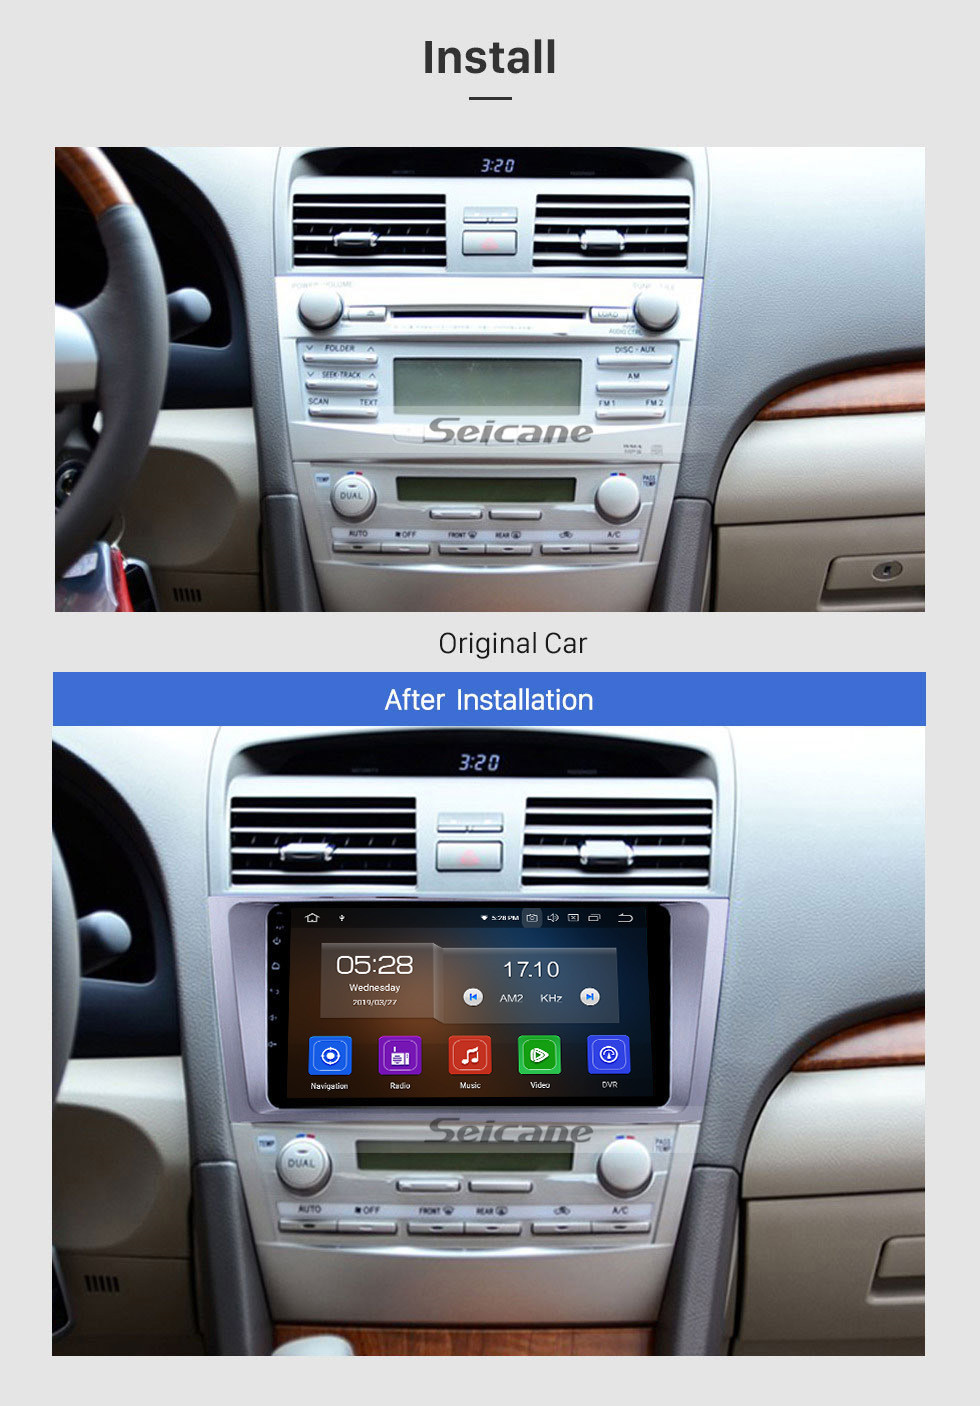 Seicane 9 Inch OEM Android 10.0 Radio Capacitive Touch Screen For 2007-2011 Toyota CAMRY Support 3G WiFi Bluetooth GPS Navigation system TPMS DVR OBD II AUX Headrest Monitor Control Video Rear camera USB SD